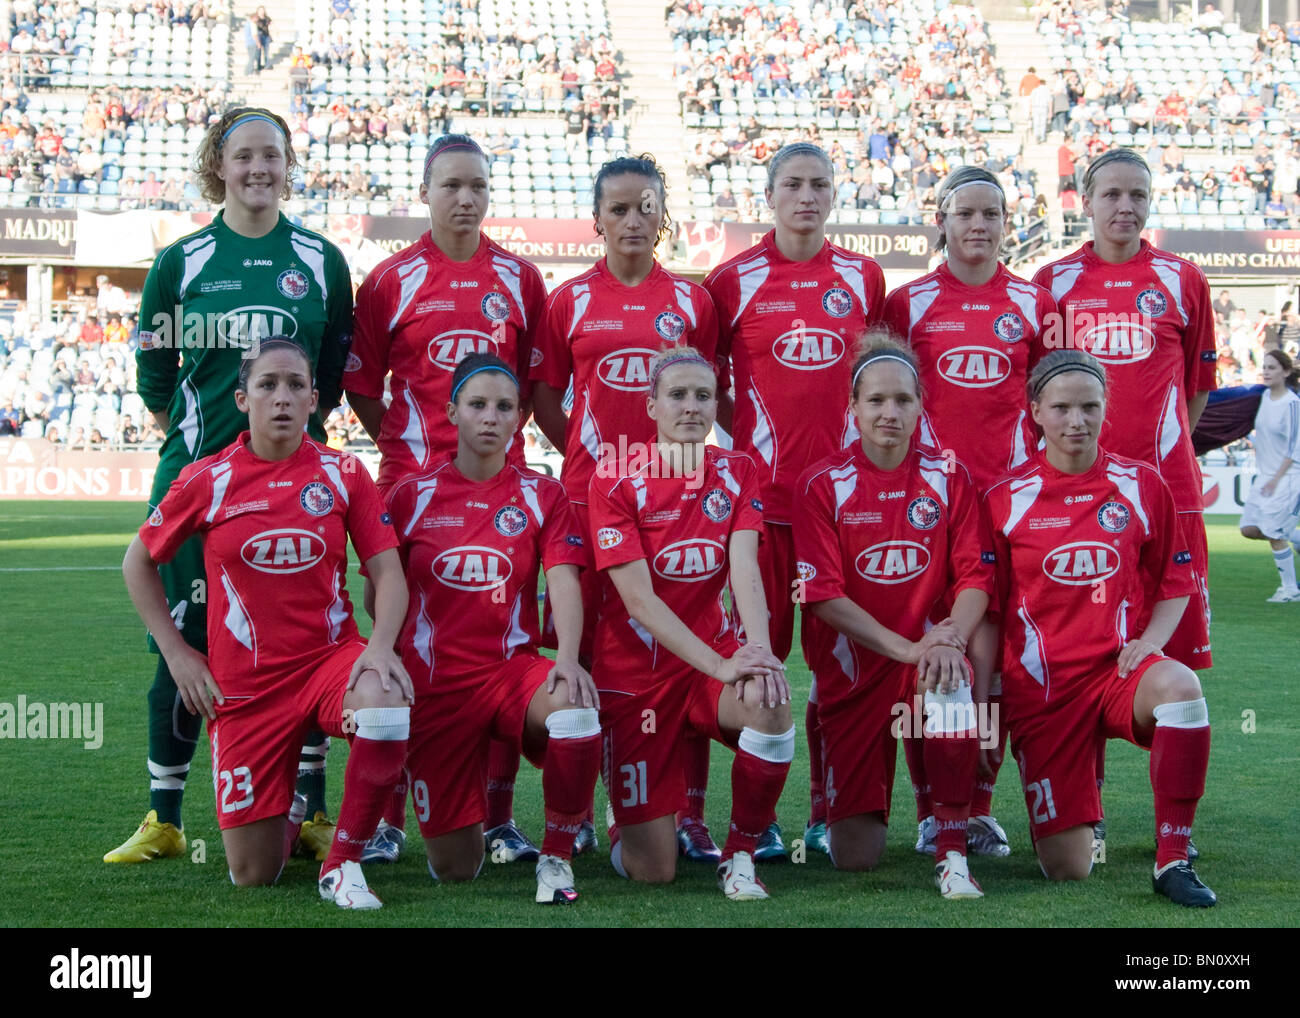 madrid spain 16 05 2010 the uefa womens champions league final played stock photo alamy https www alamy com stock photo madrid spain 16 05 2010 the uefa womens champions league final played 30139273 html